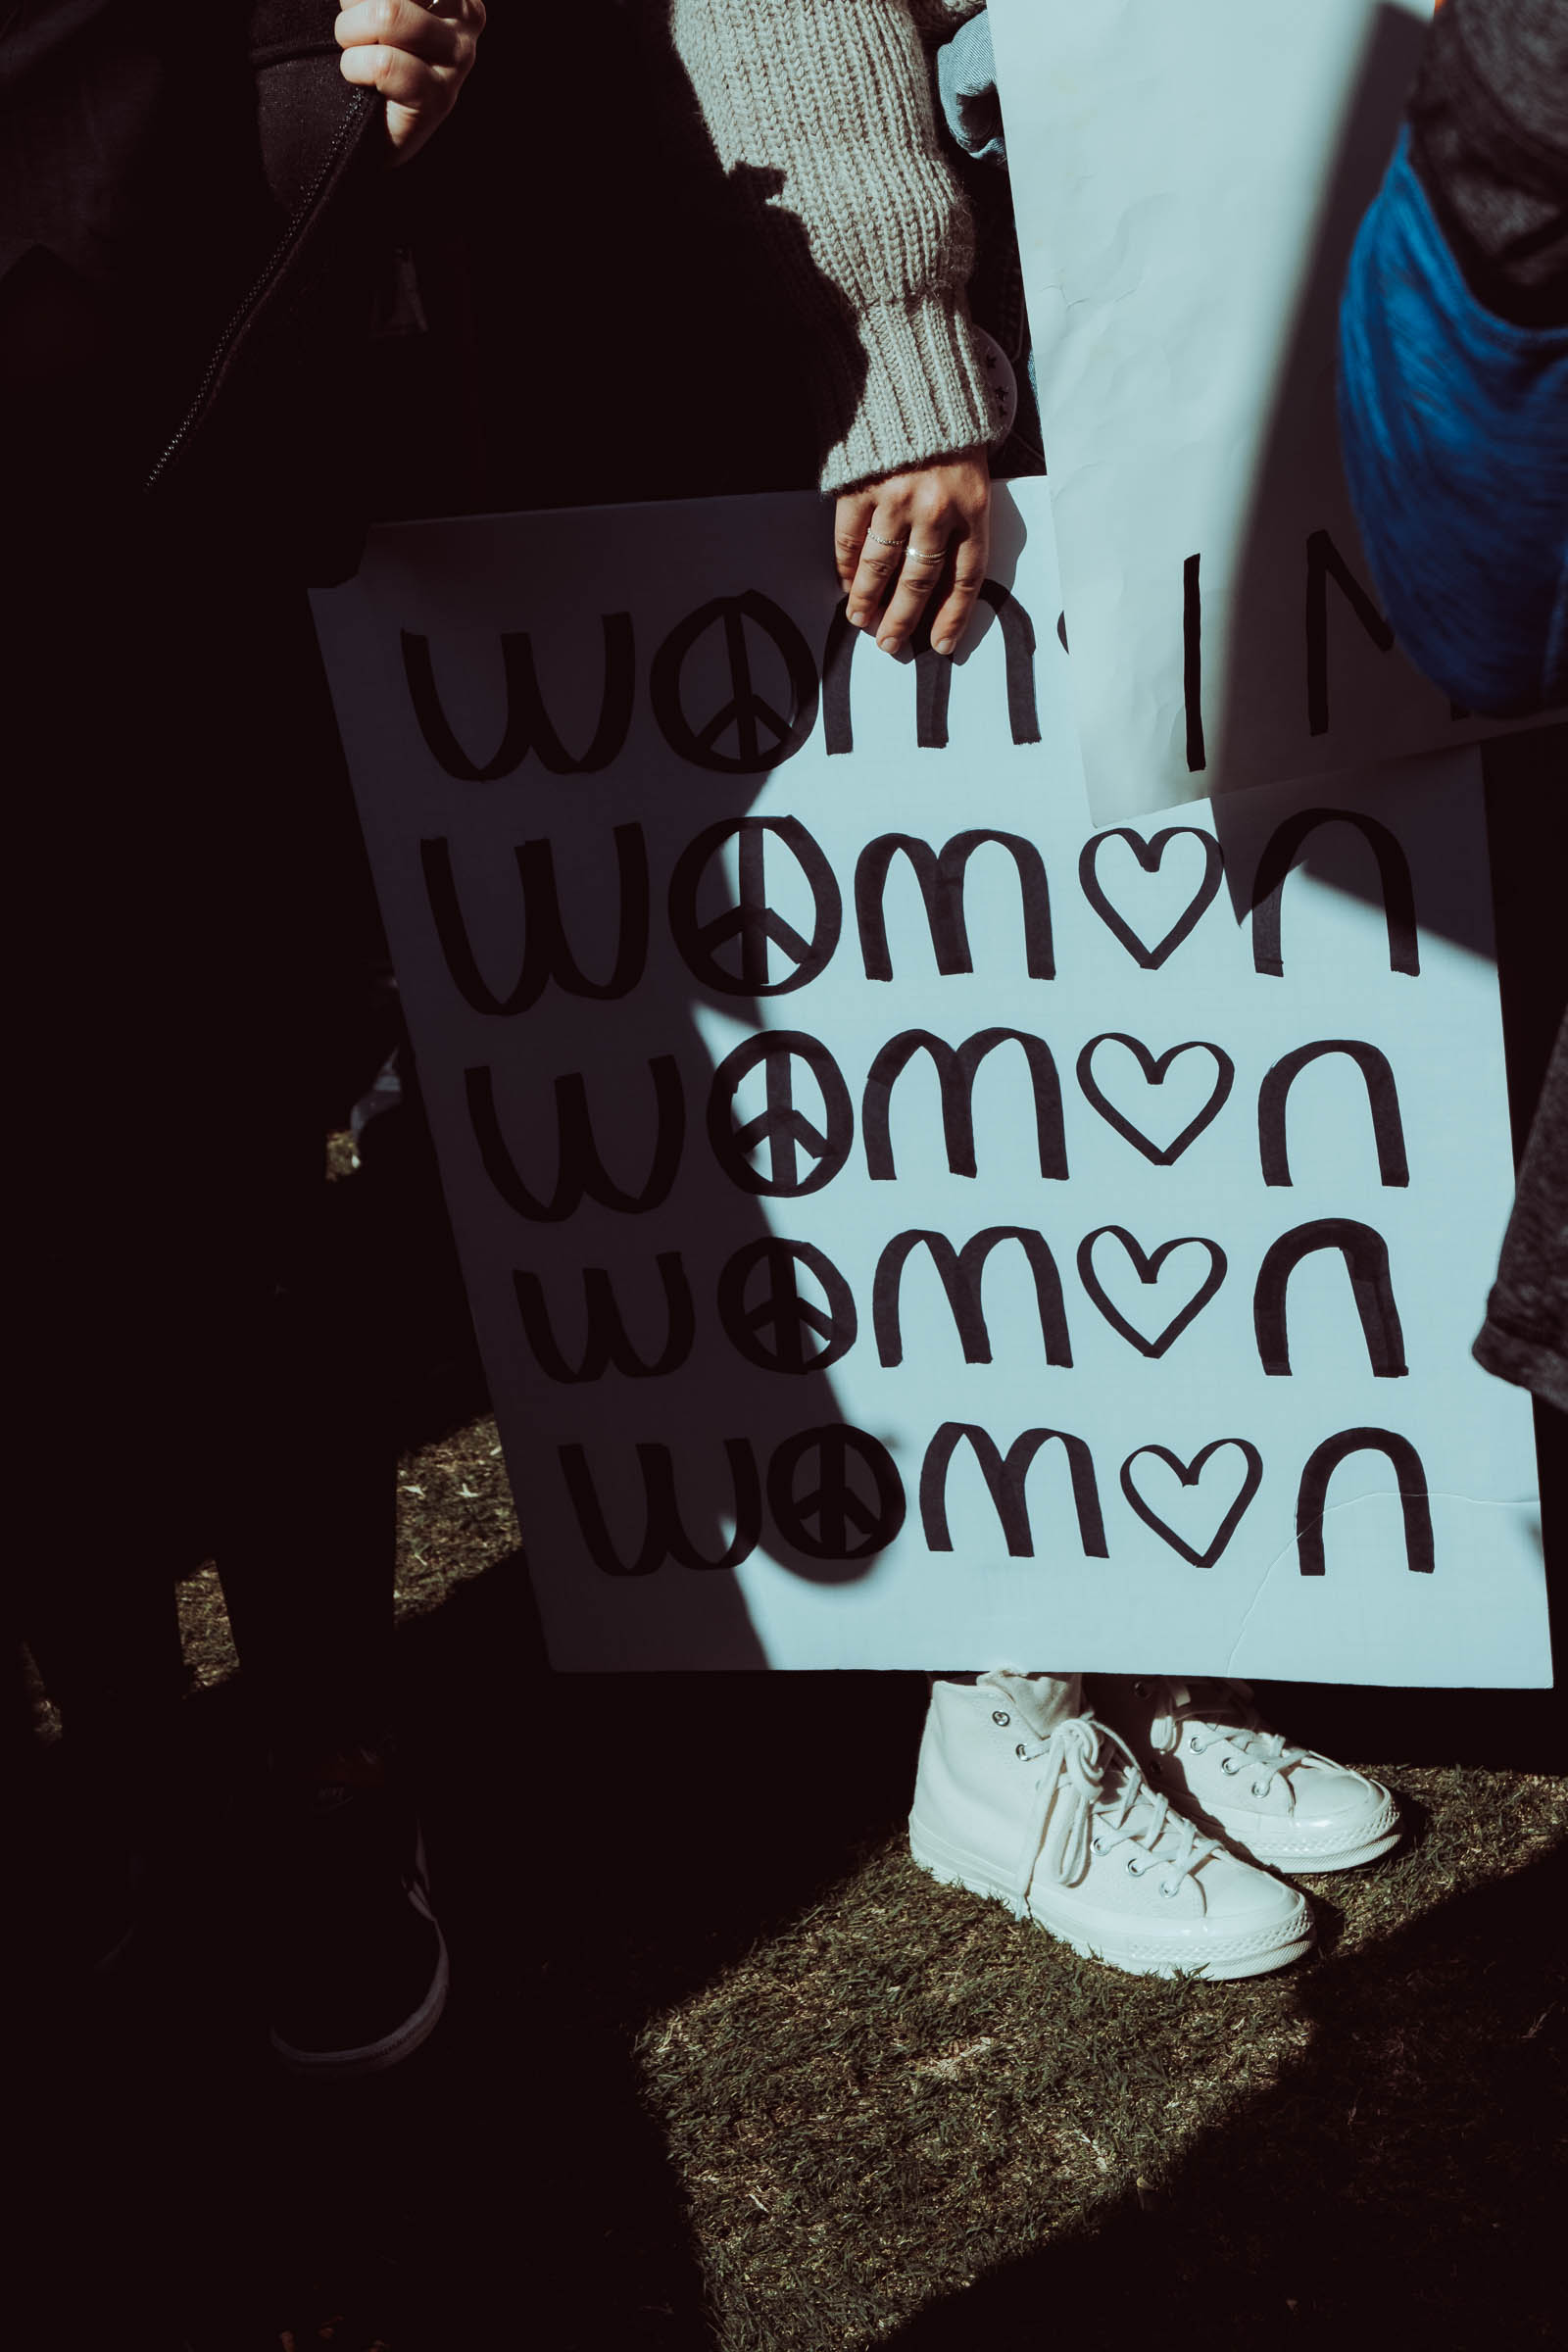 Chacon Images_WomensMarch_Web-38.jpg